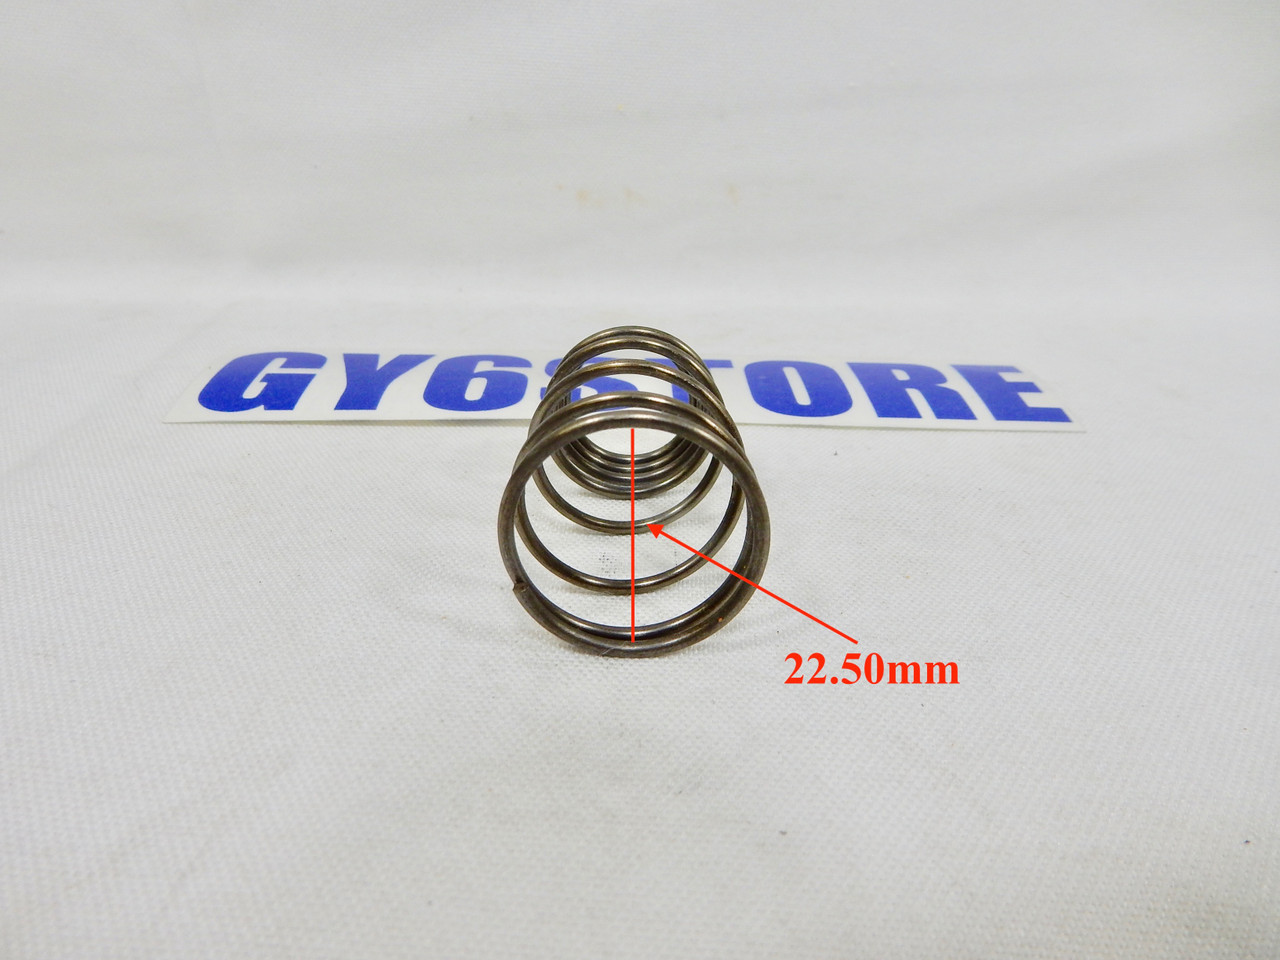 OIL DRAIN PLUG SPRING FOR 50cc QMB139 & 150cc GY6 SCOOTER ATV KART